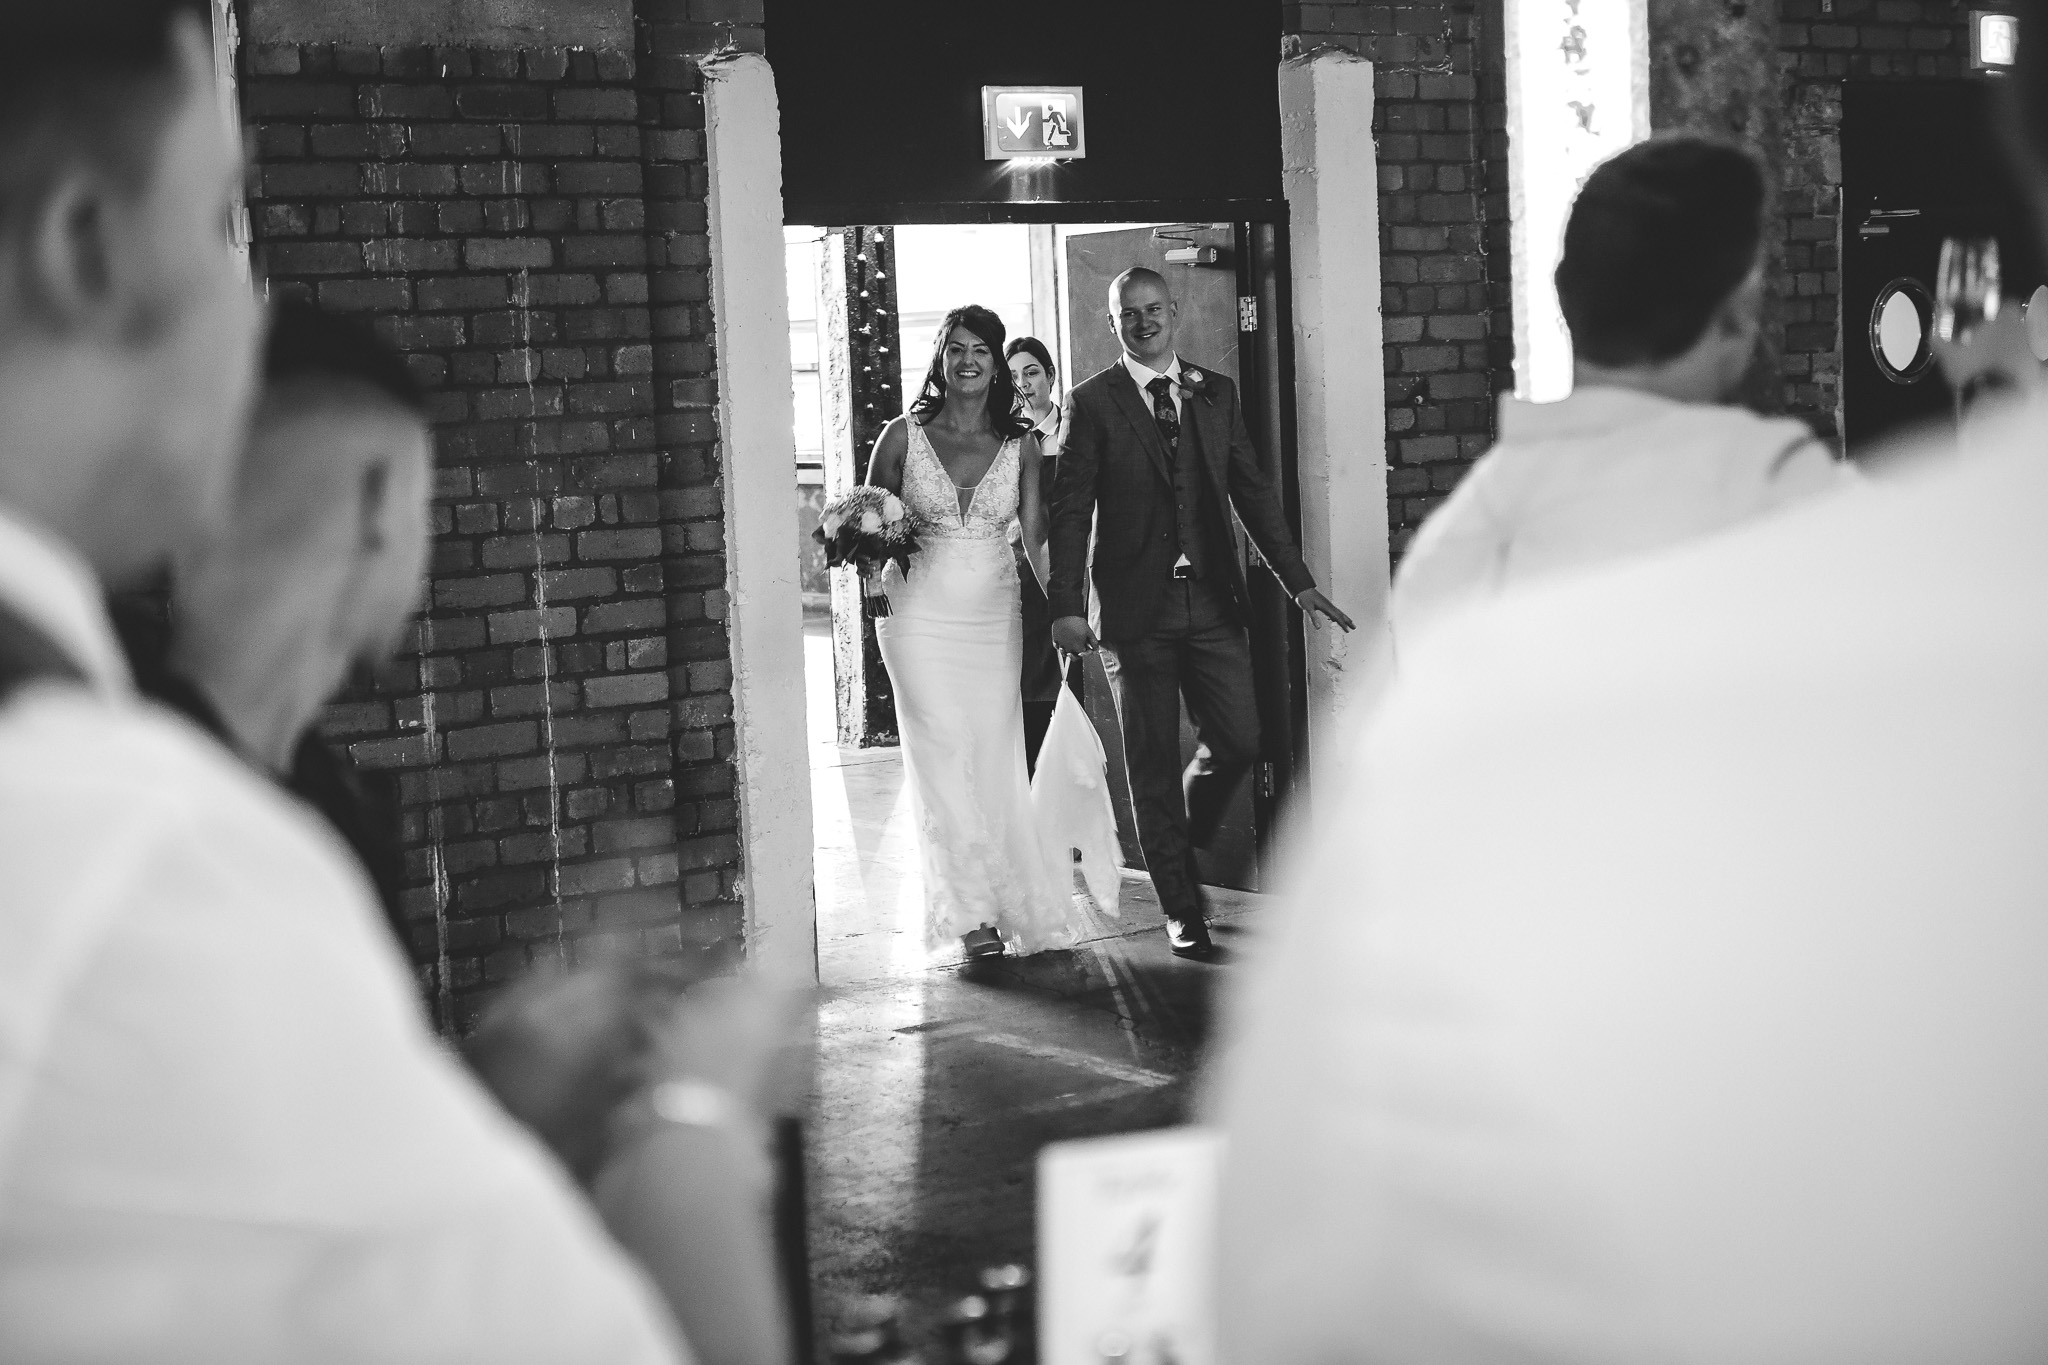 The bride and groom are welcomed to machester wedding venue, Victoria Warehouse